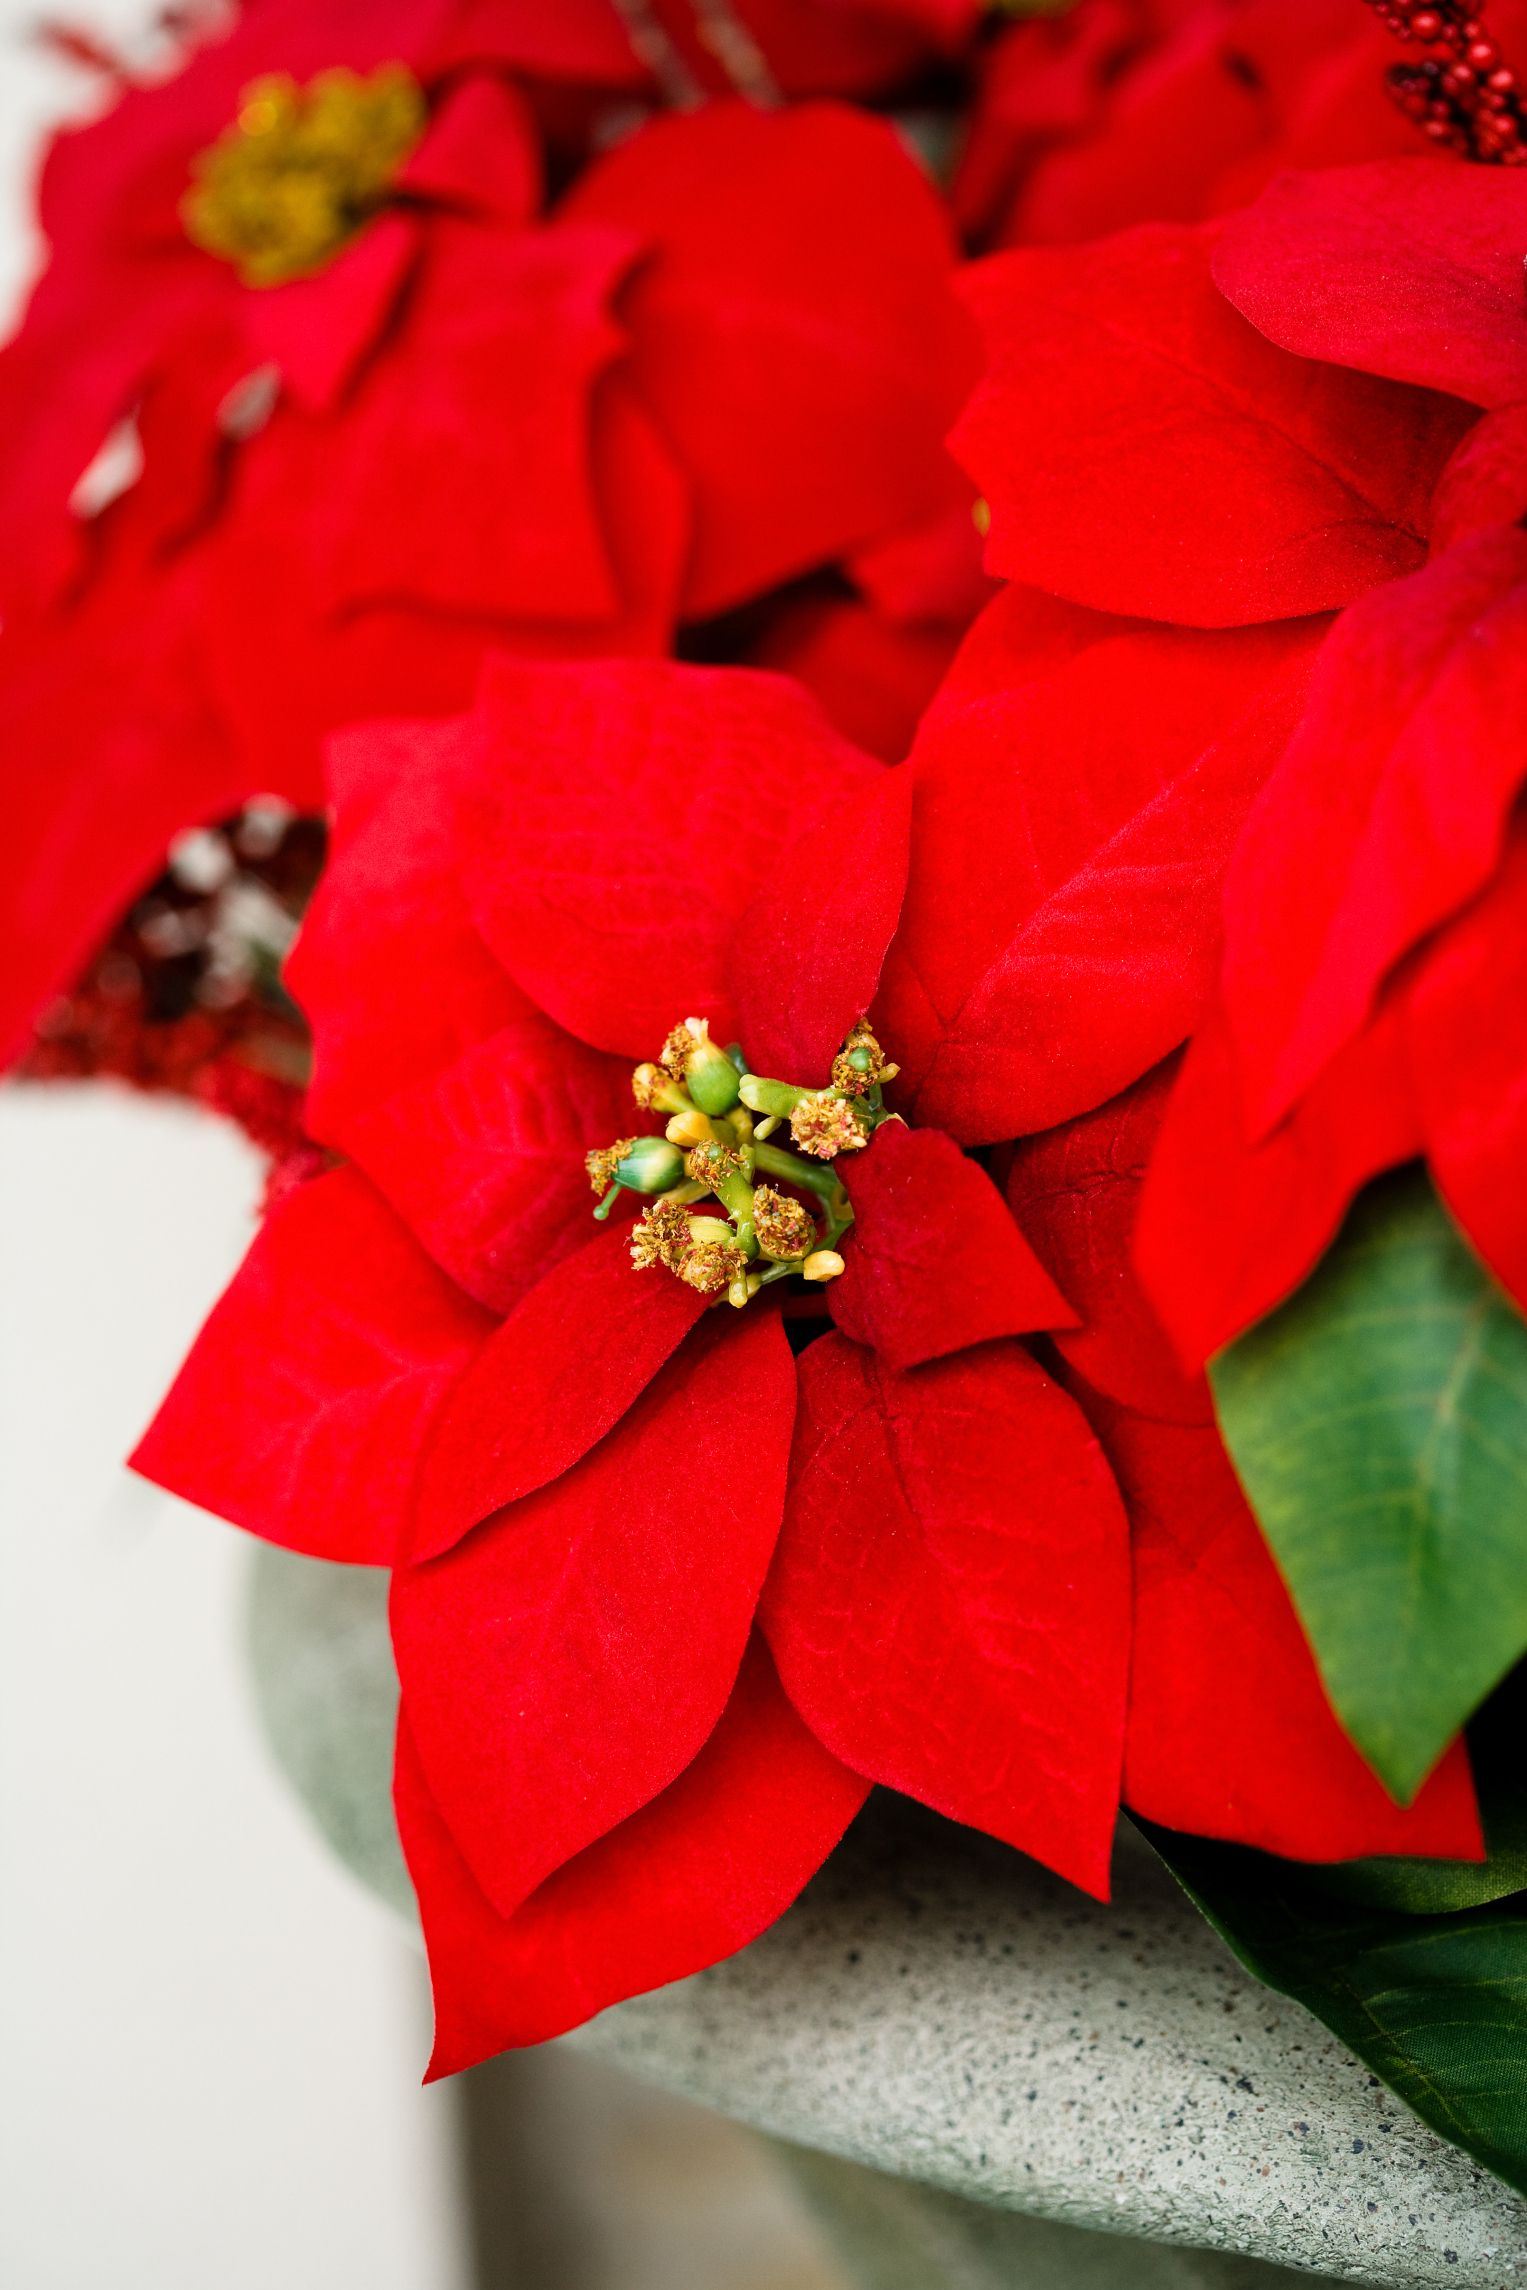 Poinsettias And Cats Dogs Poinsettias Poisonous To Cats Red Christmas Flower Christmas Plants Poinsettia